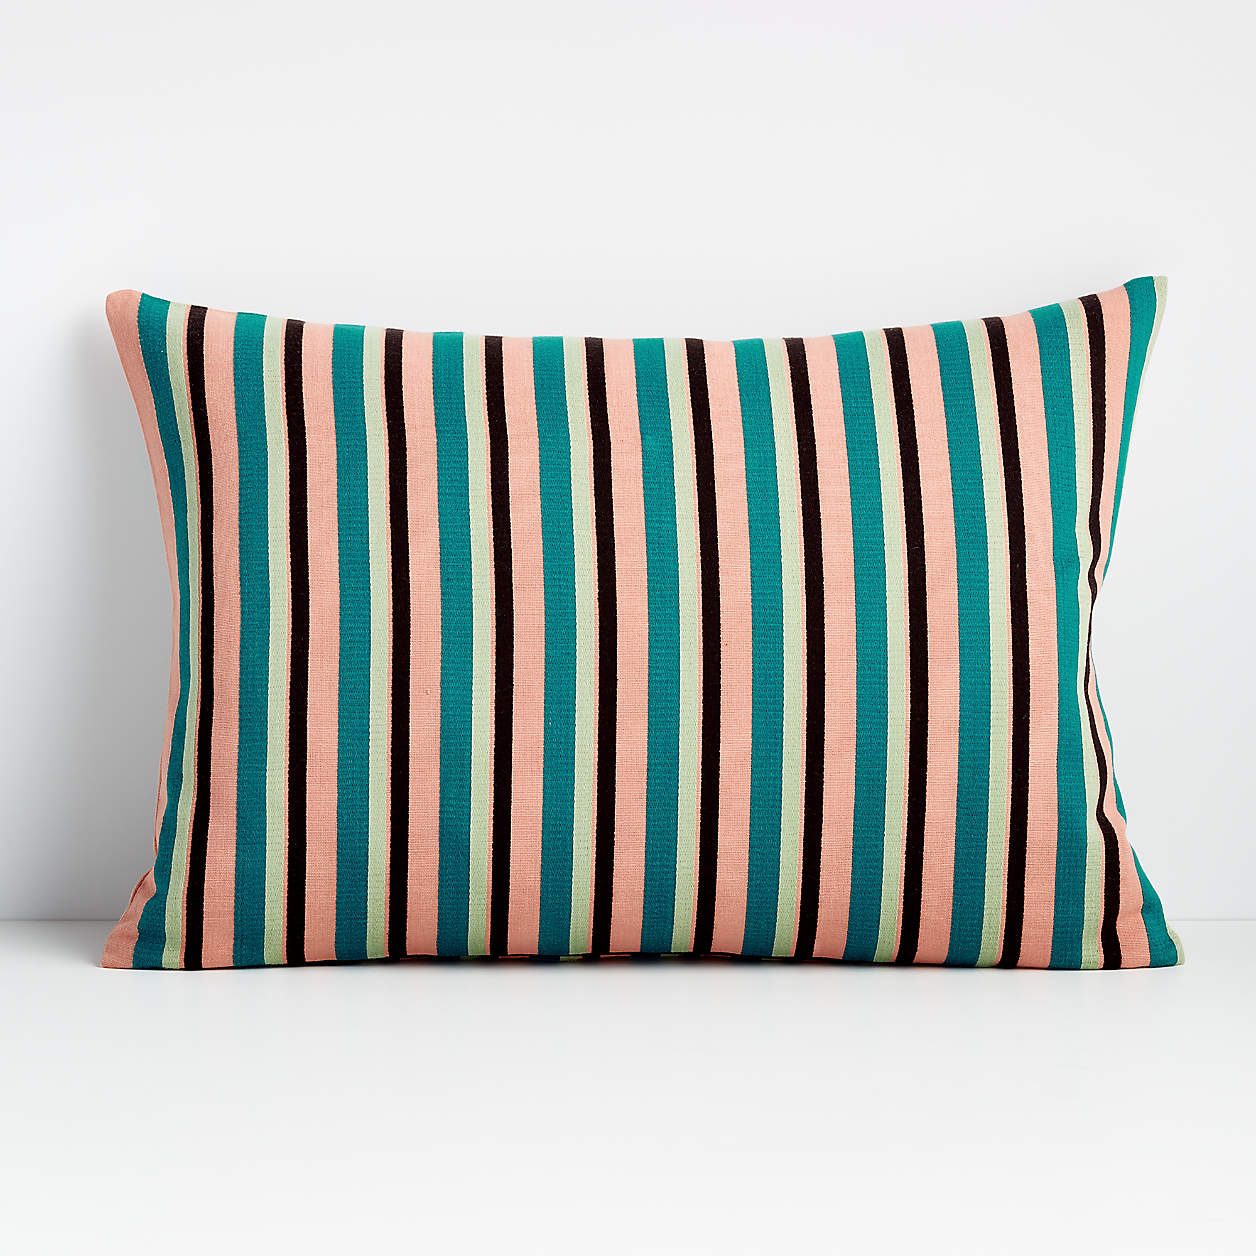 moreau-teal-22×15-striped-pillow-with-feather-down-insert